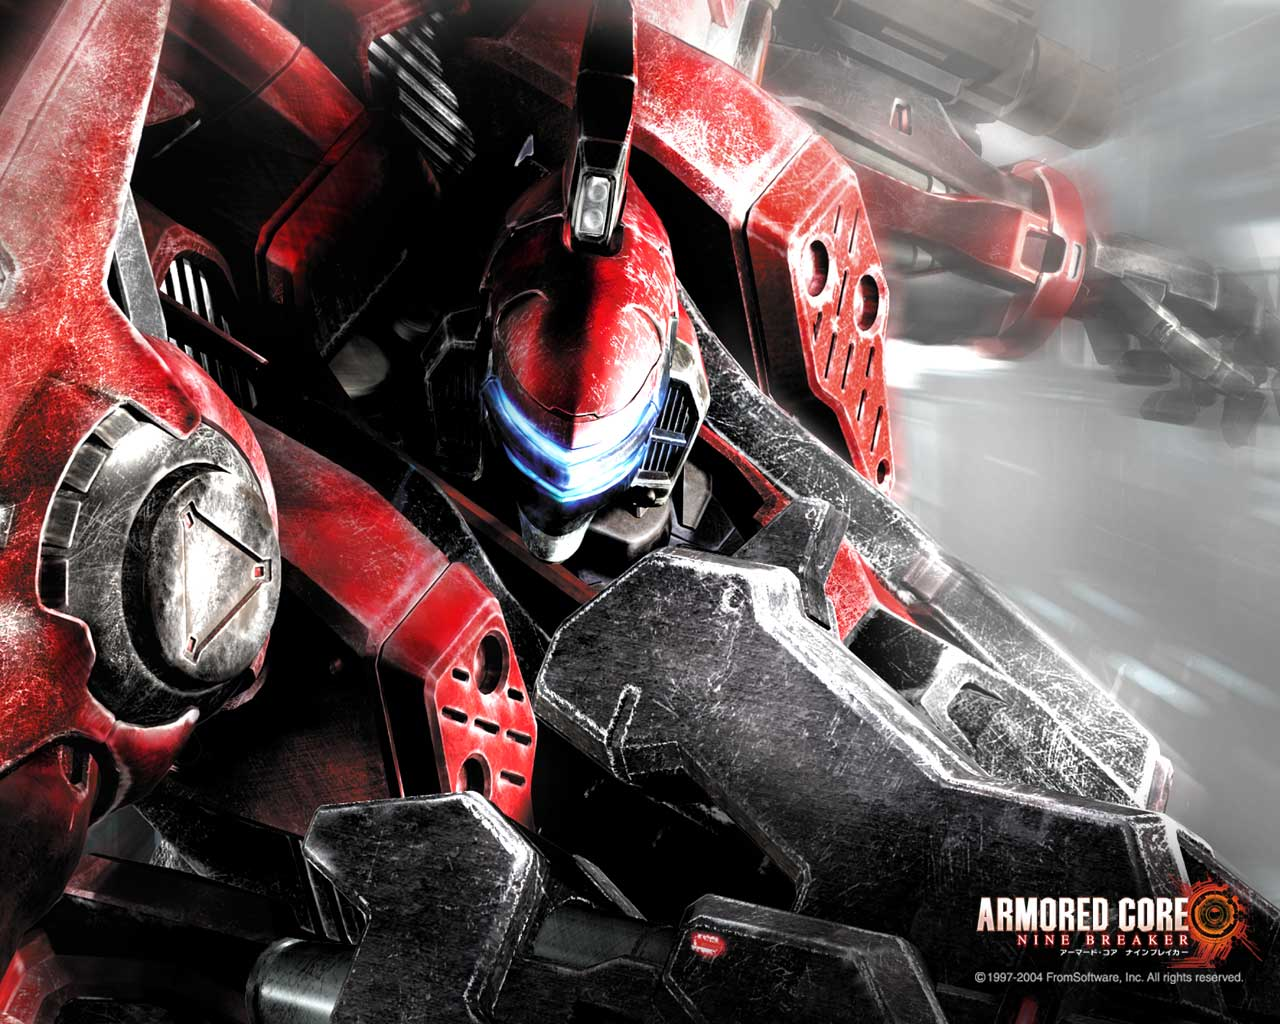 Armored Core: Armored core nine breaker3 - Minitokyo